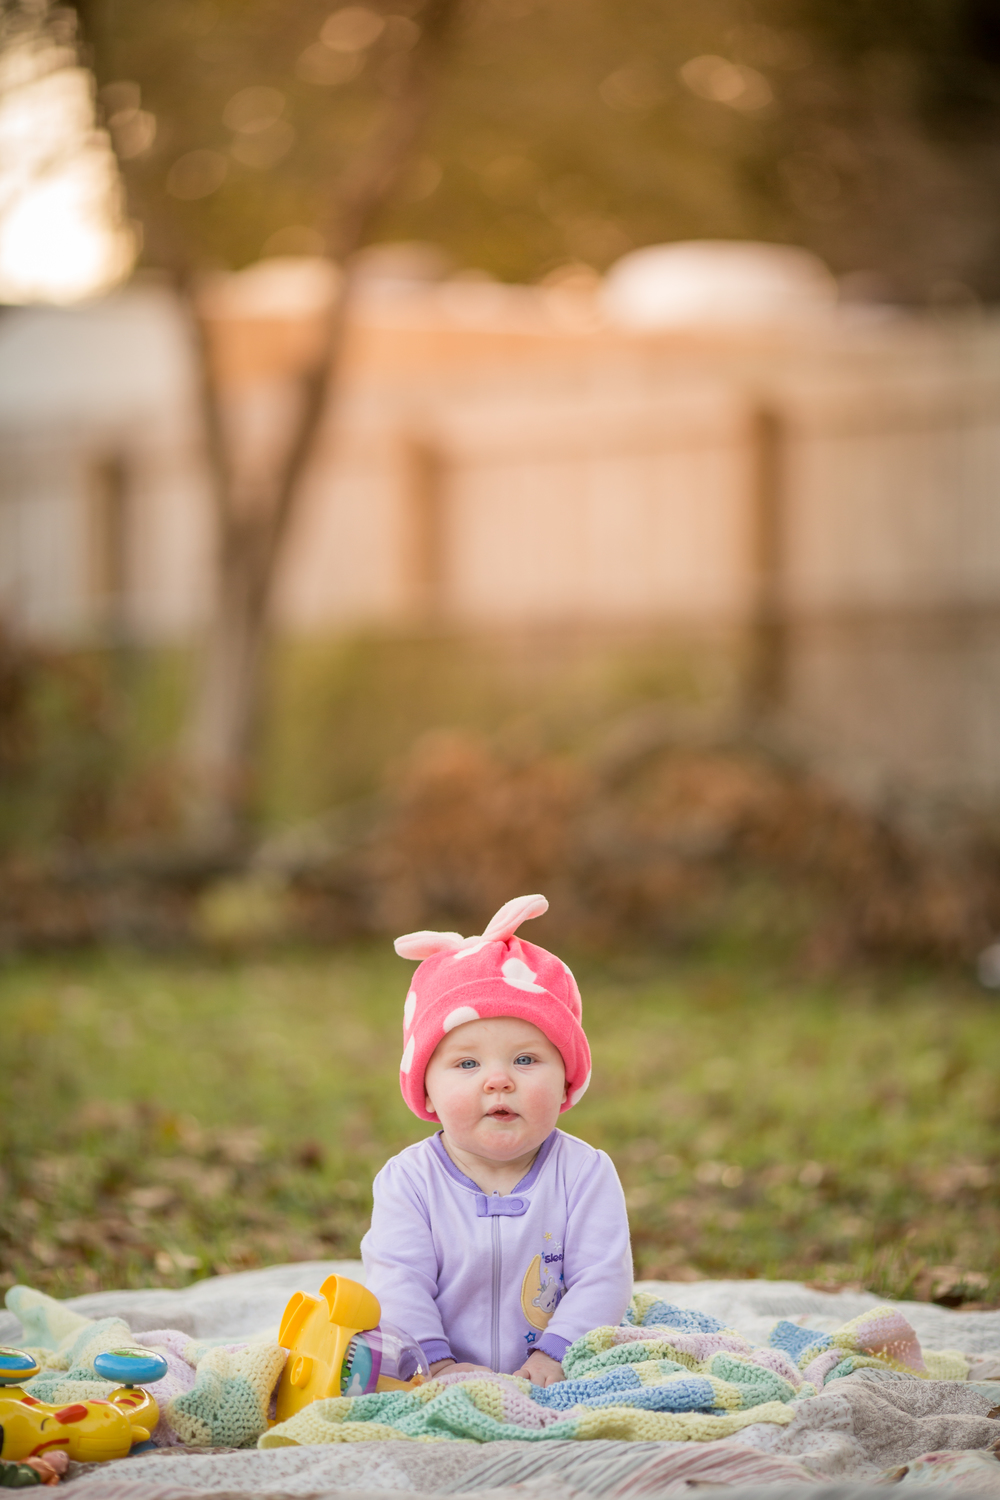 cypress texas child photographer. cypress texas family photography. sarah borchgrevink photography.